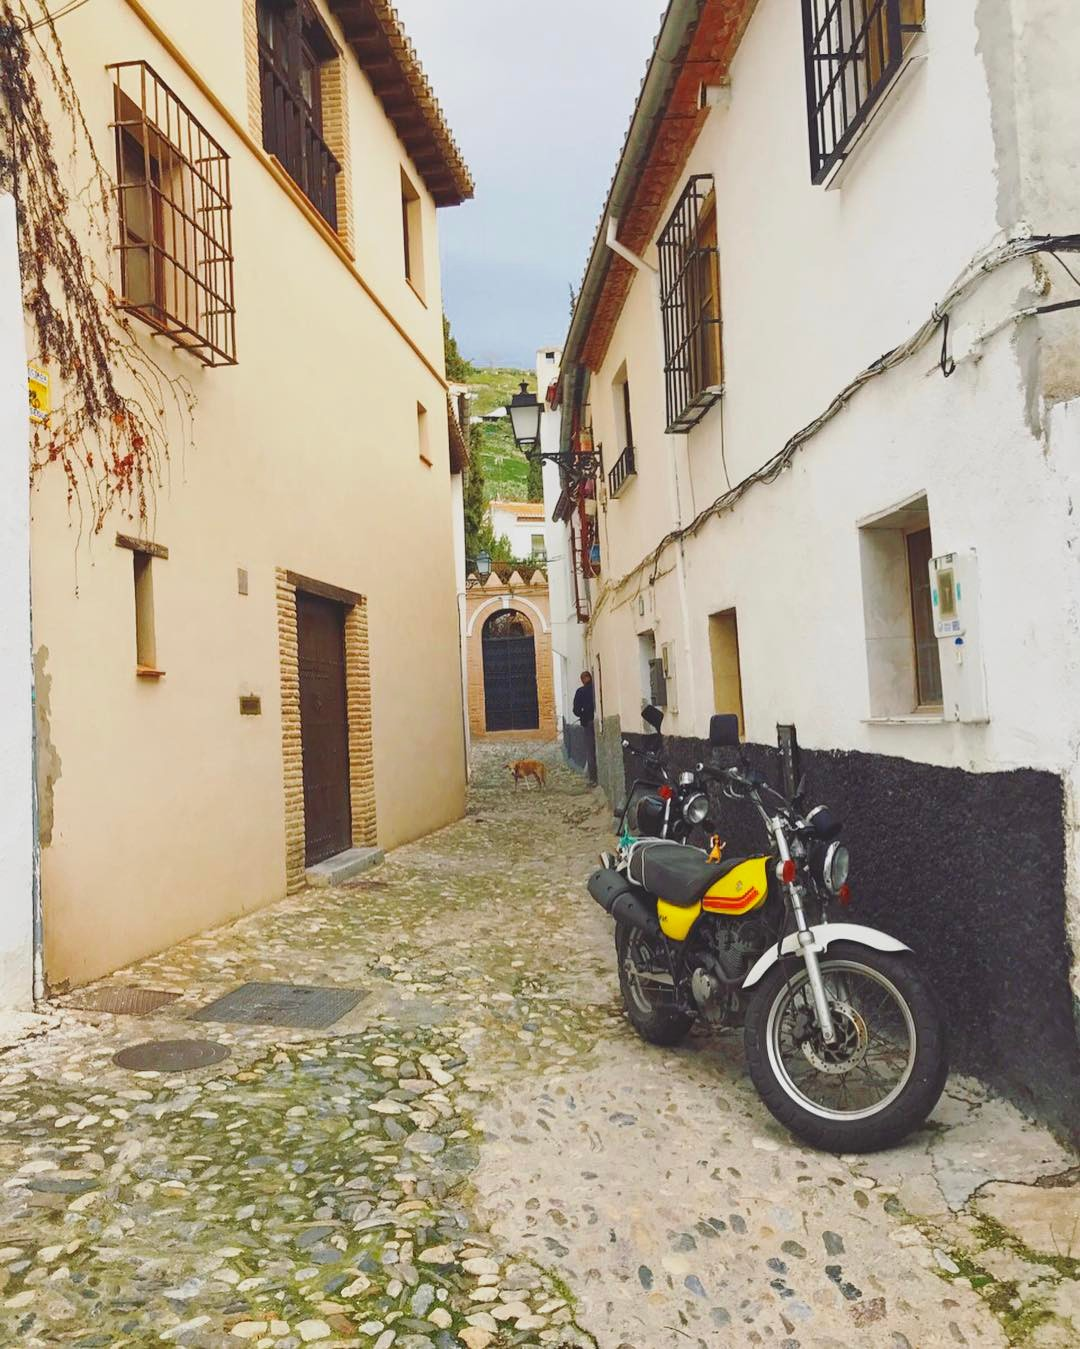 Monday commute with that Euro swag  iwish moto spainlyfe